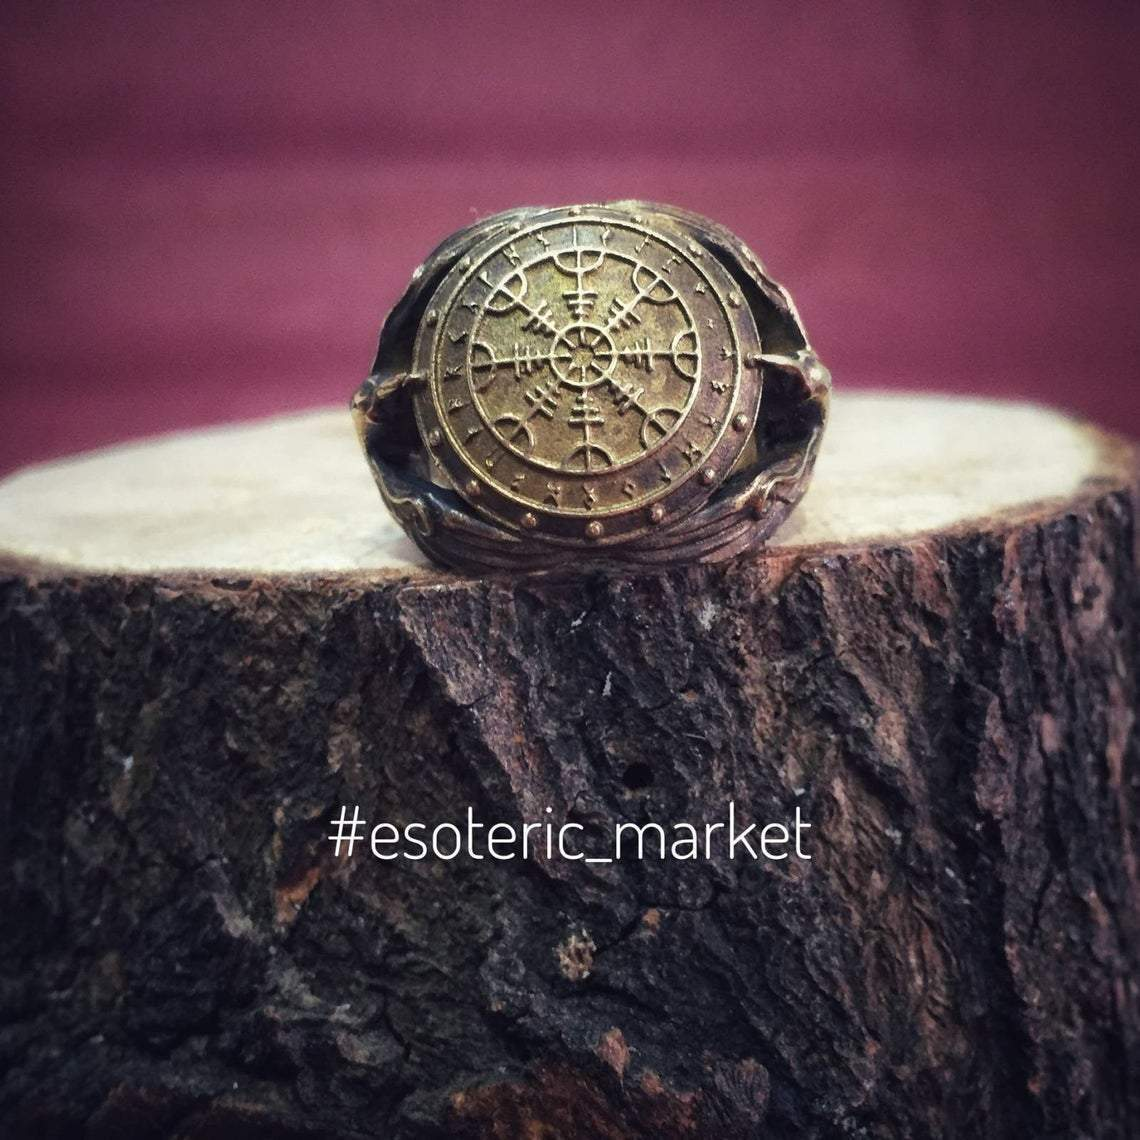 Rings Vikings Helm of Awe in Rune Circle with Ravens Bronze Ring Ancient Treasures Ancientreasures Viking Odin Thor Mjolnir Celtic Ancient Egypt Norse Norse Mythology